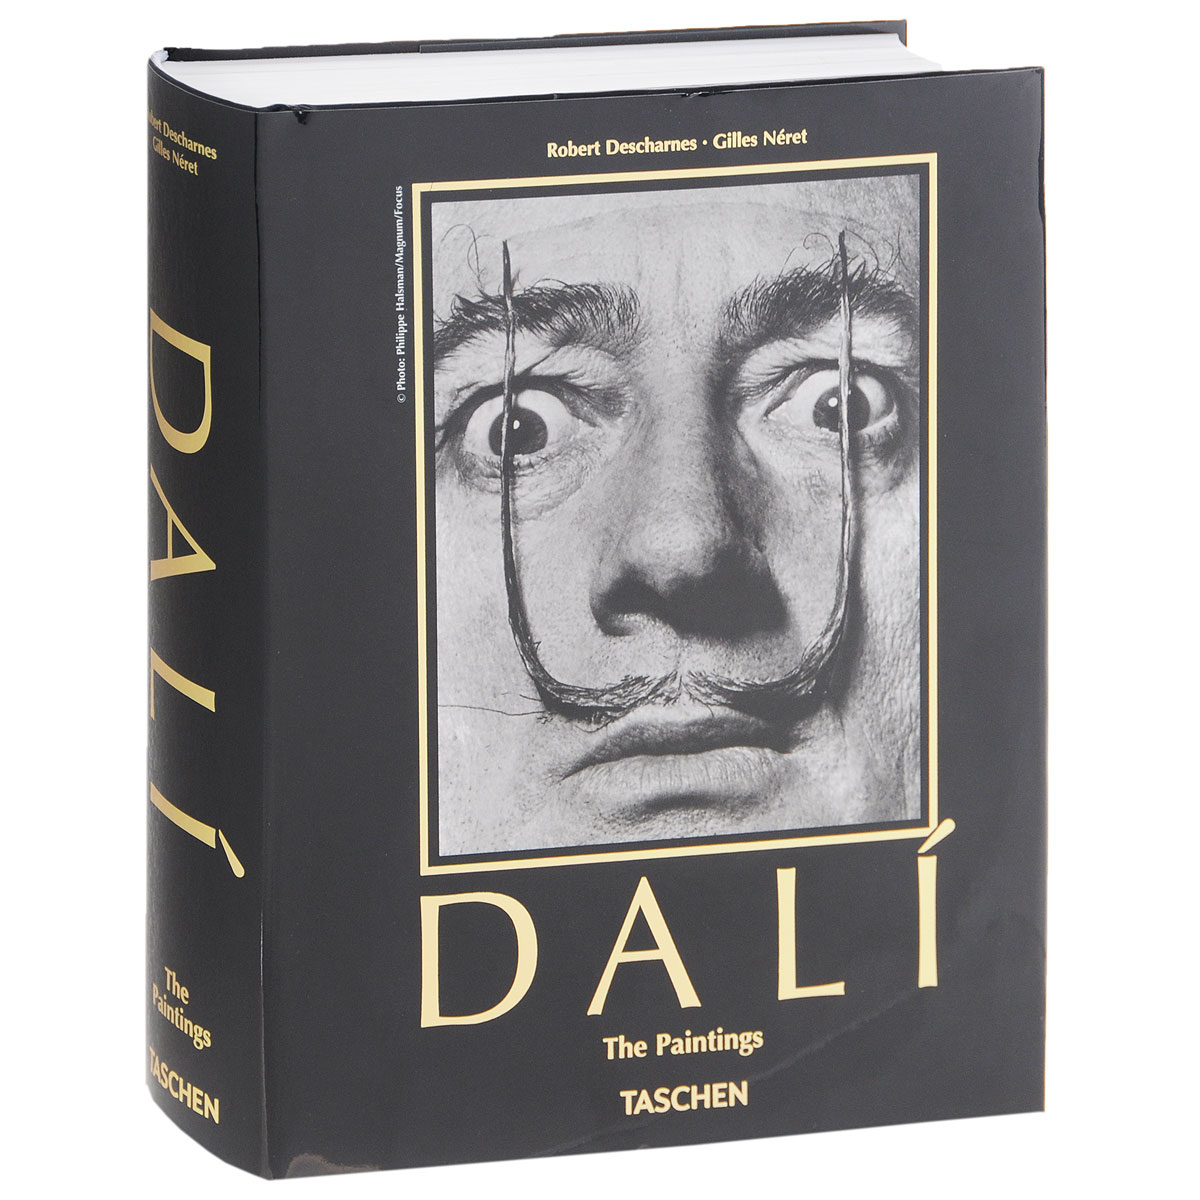 Dali: The Paintings burning guitar pattern unframed wall art canvas paintings